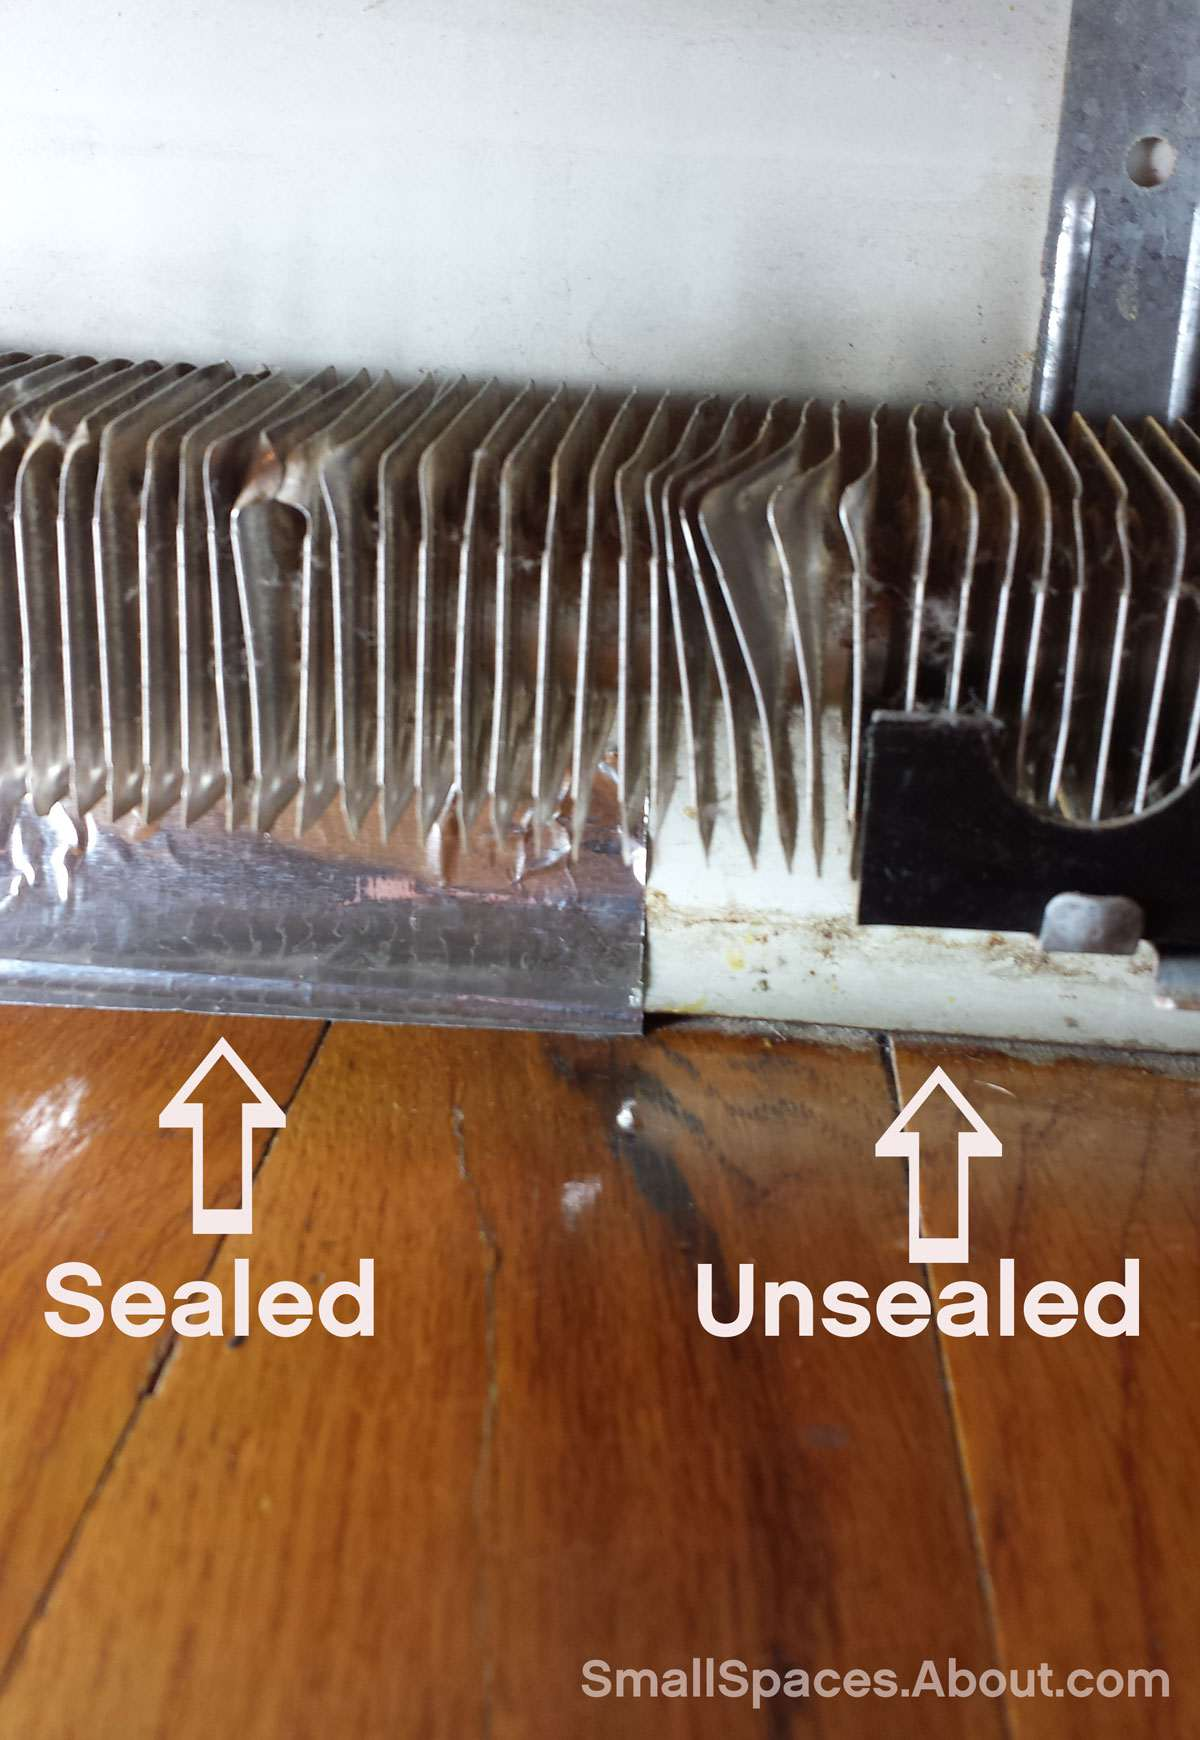 Baseboard sealed with metal tape